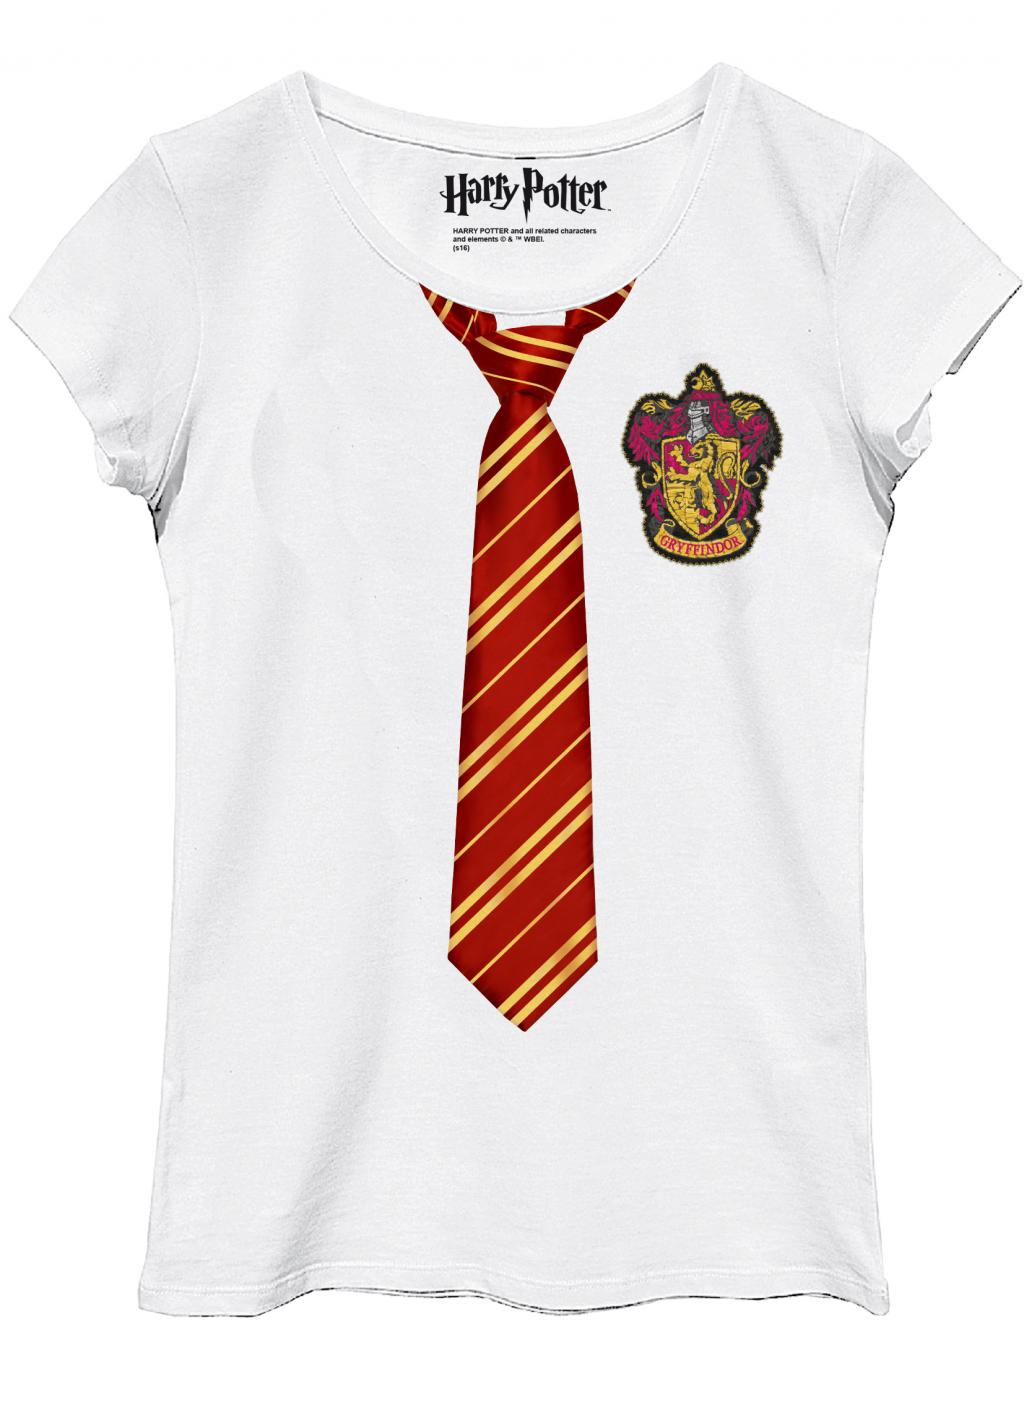 HARRY POTTER - T-Shirt Gryffindor Disguise - GIRL (L)_1